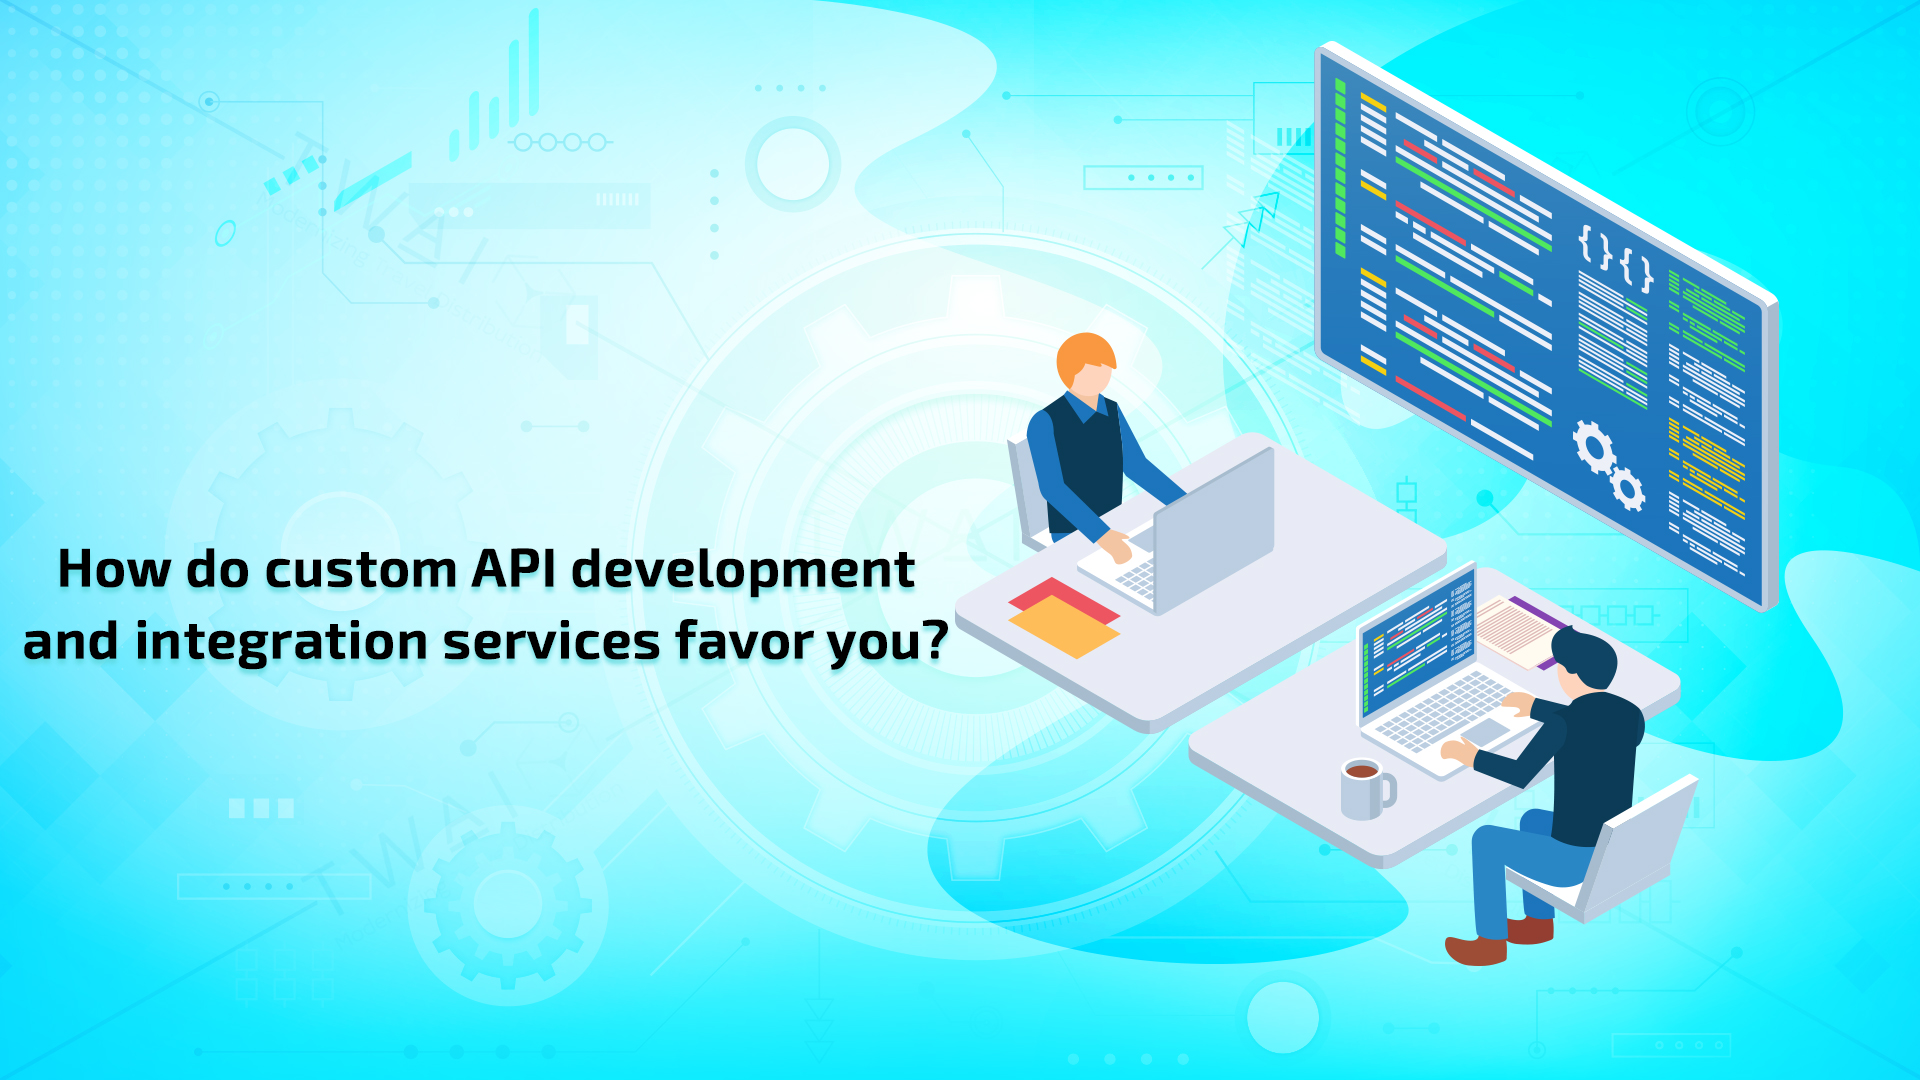 How do custom API development and integration services favor you?